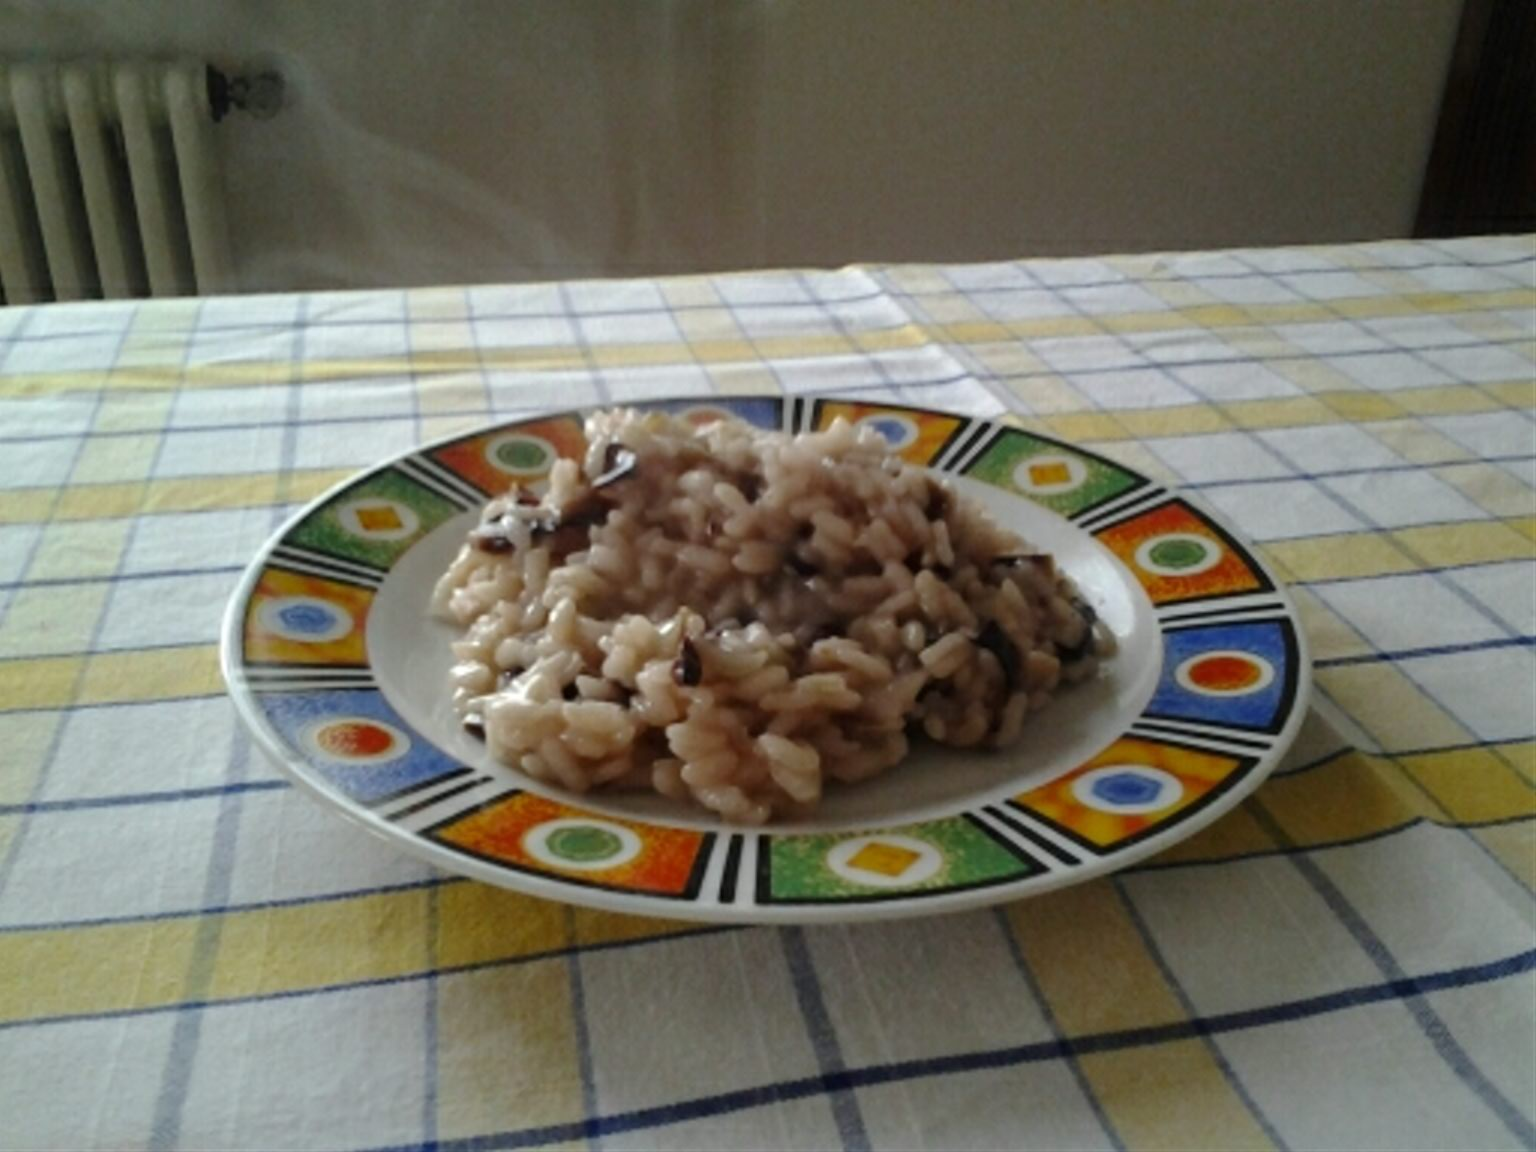 Risotto with radicchio and montasio (cheese) DOP